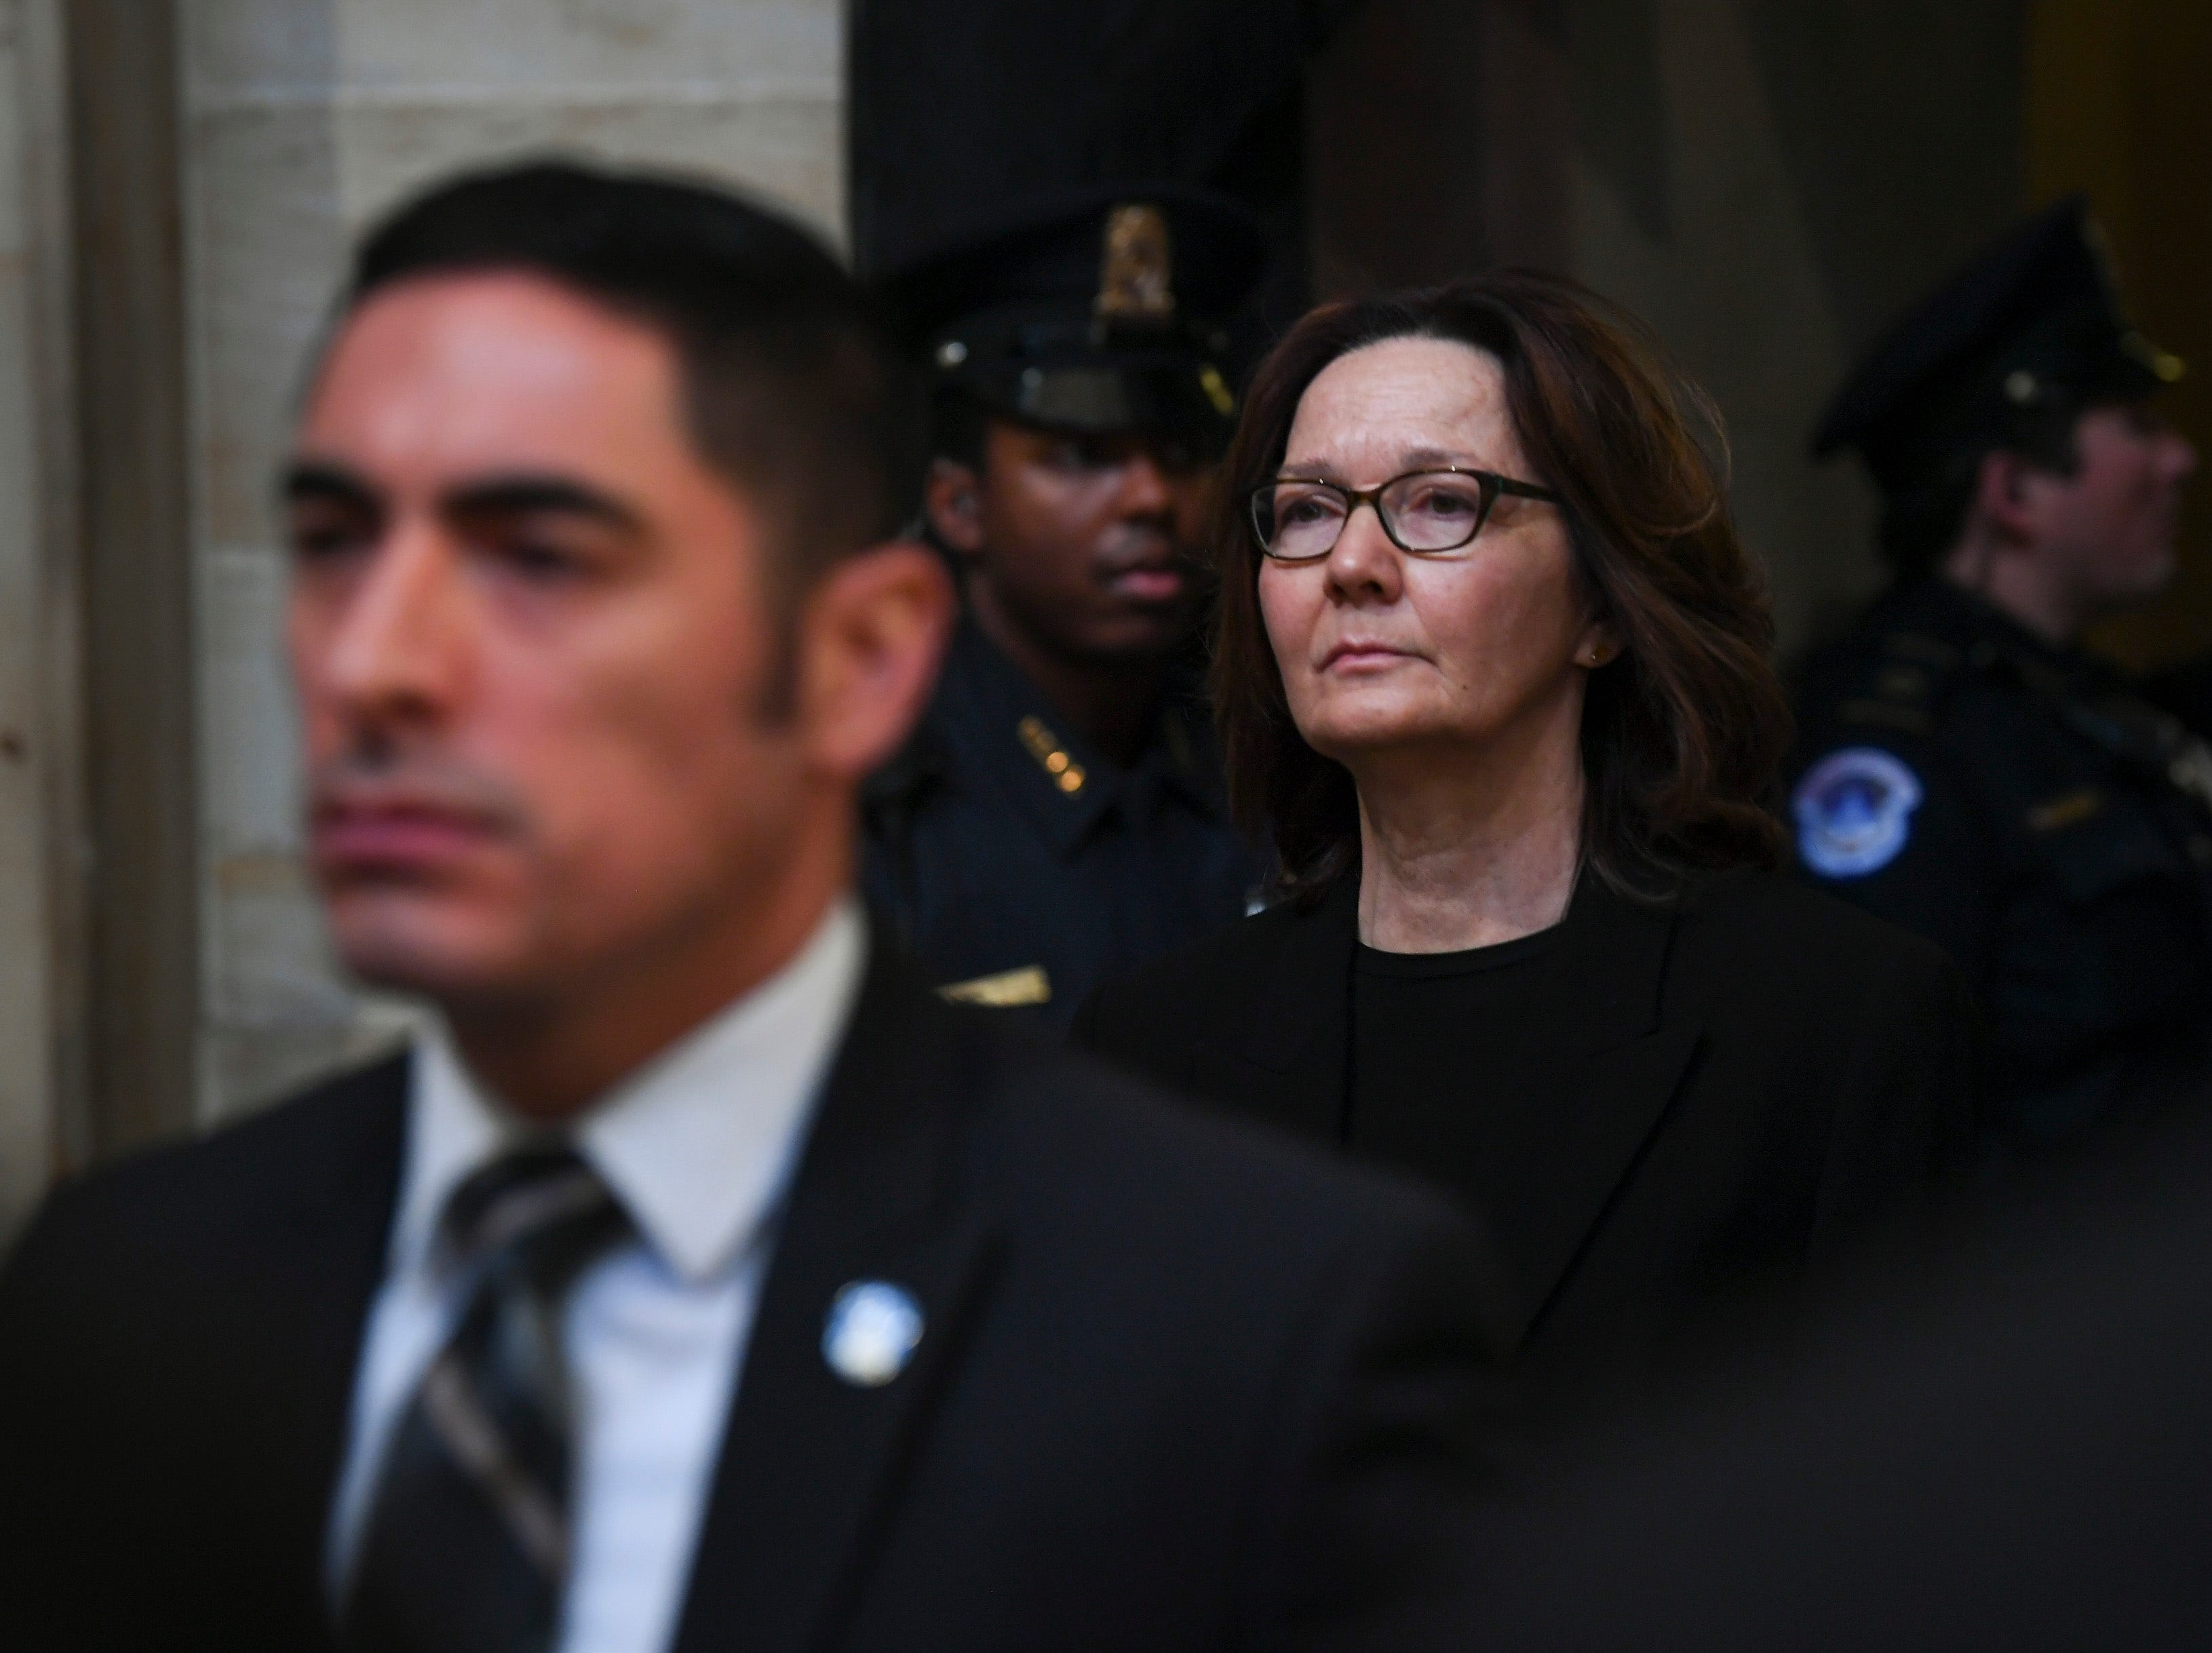 Director of the Central Intelligence Agency Gina Haspel arrives to pay respects to former President George H.W. Bush.